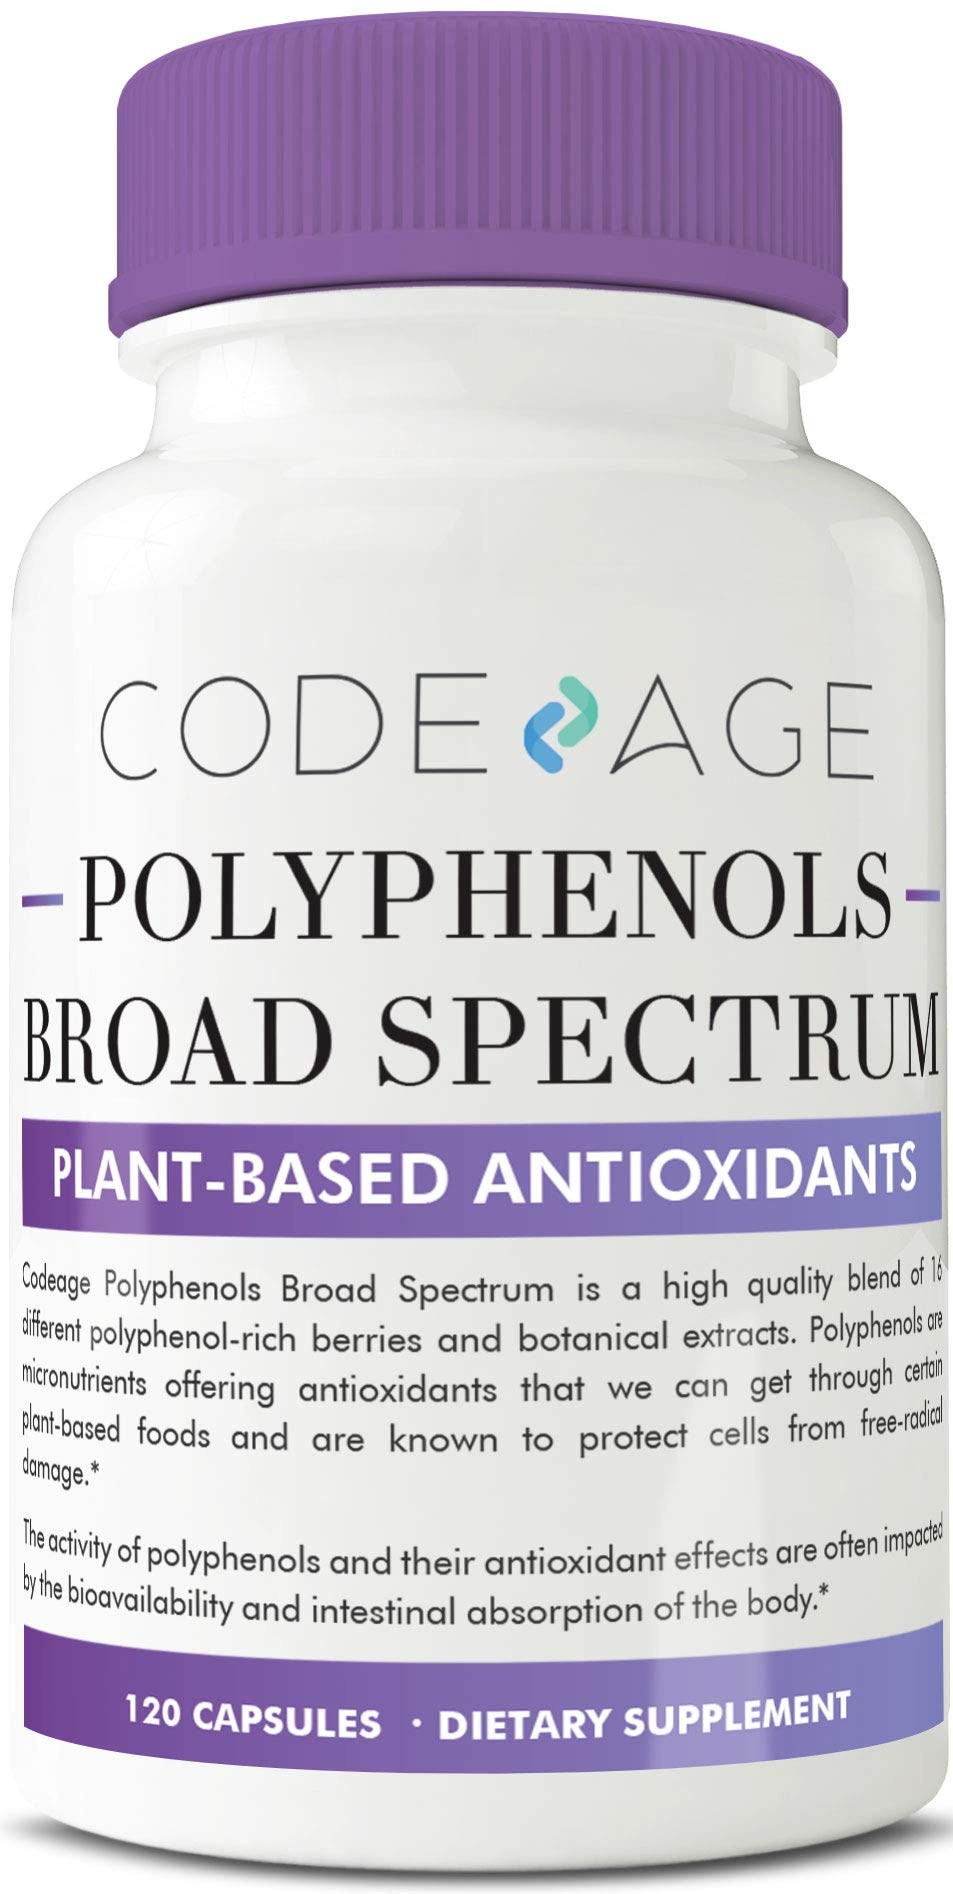 Codeage Protective Polyphenol Supplement Nutrients to Defend Against Free Radicals, Broad Spectrum Plant Based Antioxidants with Natural Resveratrol Non GMO, 120 Capsules